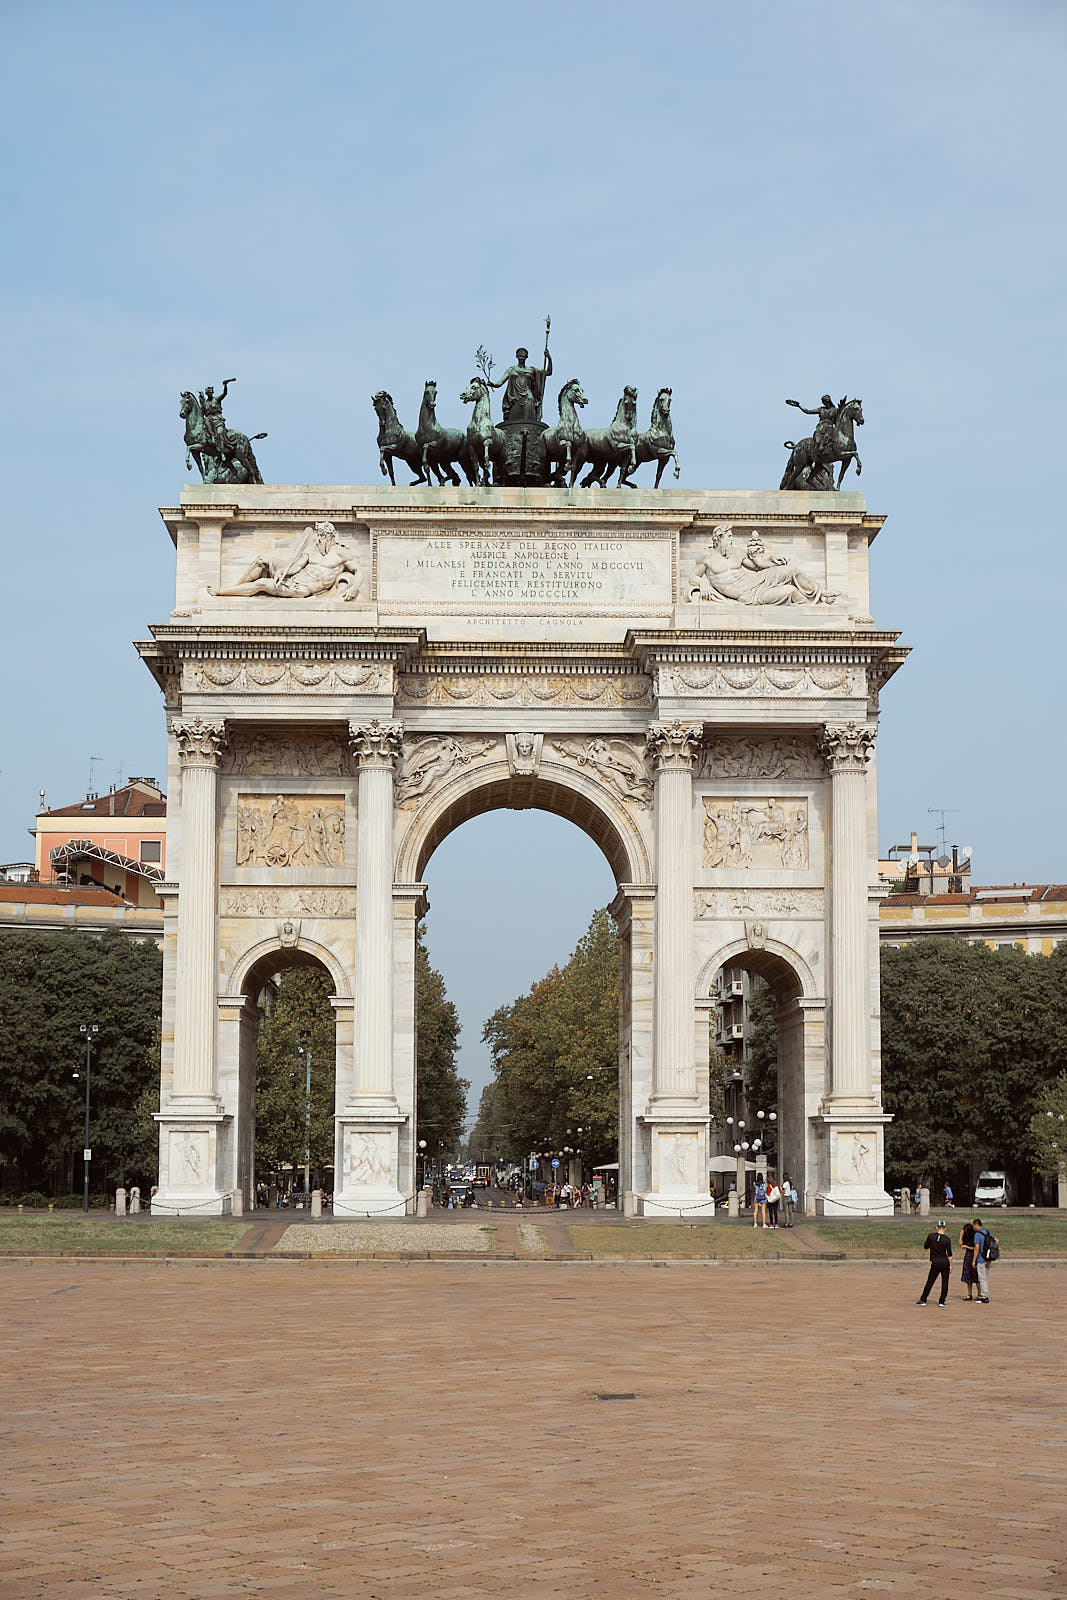 the arc of peace in milan